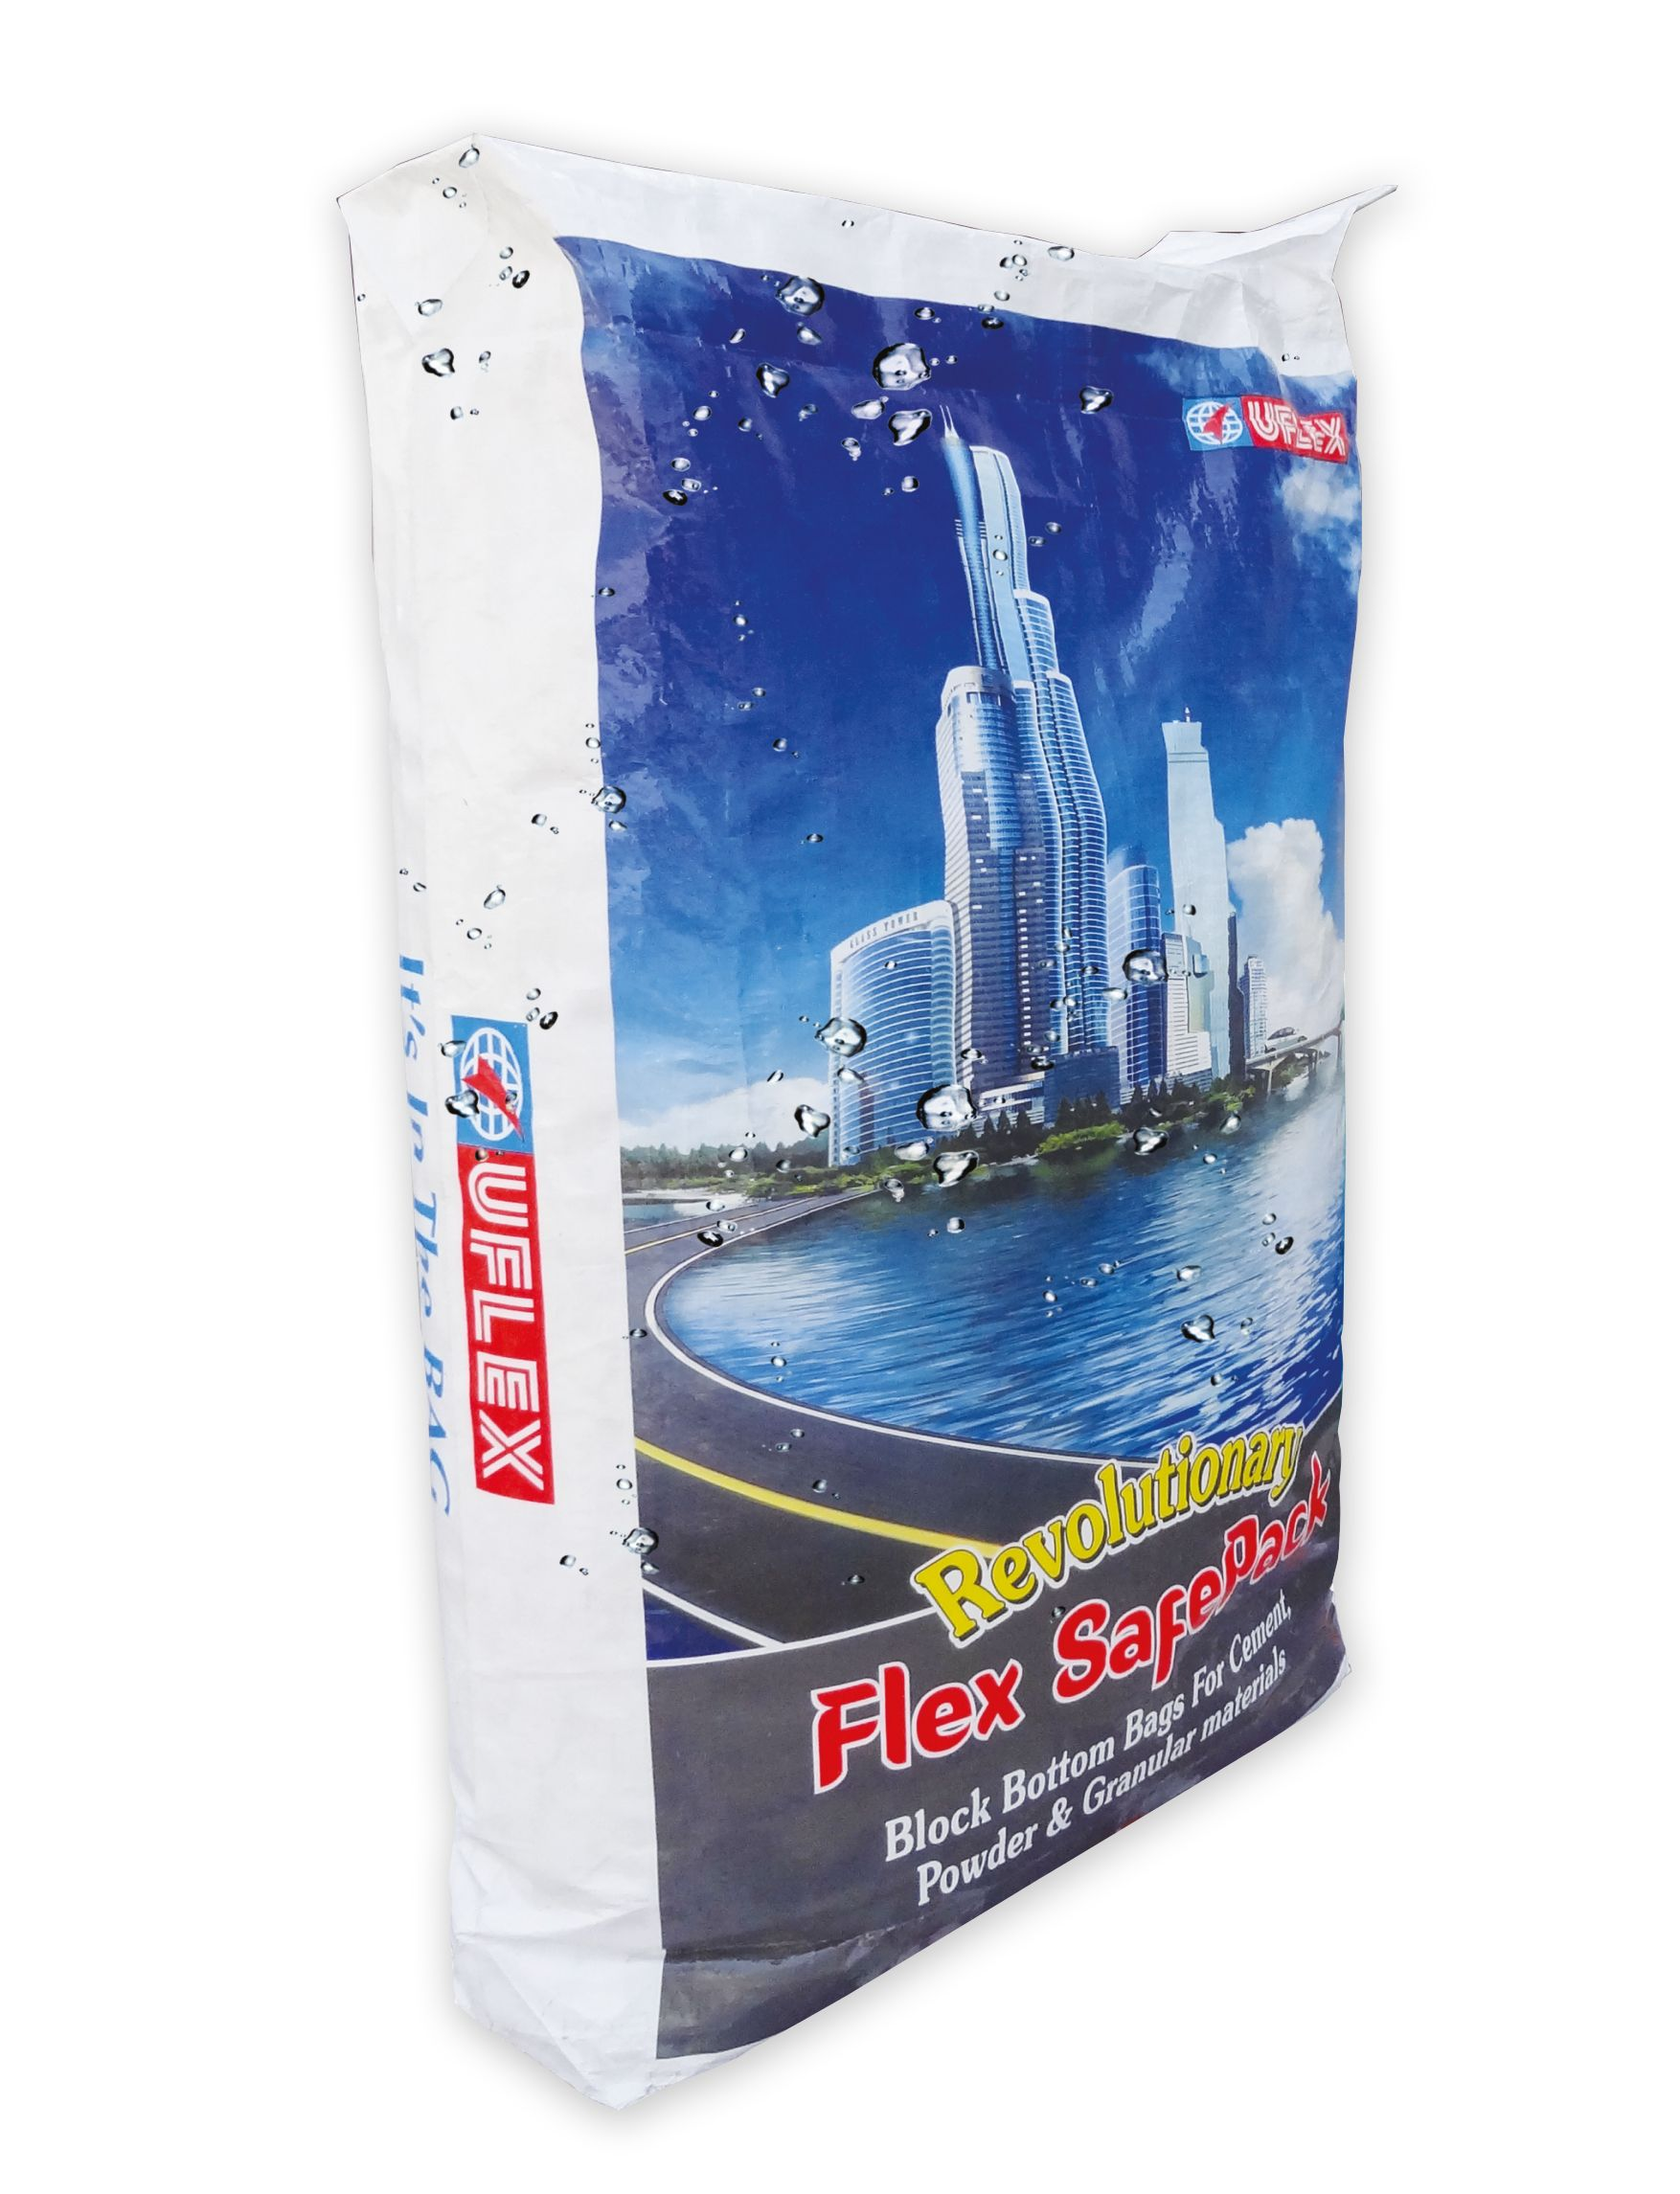 Uflex moisture-proof bag - 2015 Silver Winner - DuPont Awards for Packaging Innovaiton (Image courtesy of UFLEX LIMITED - India)